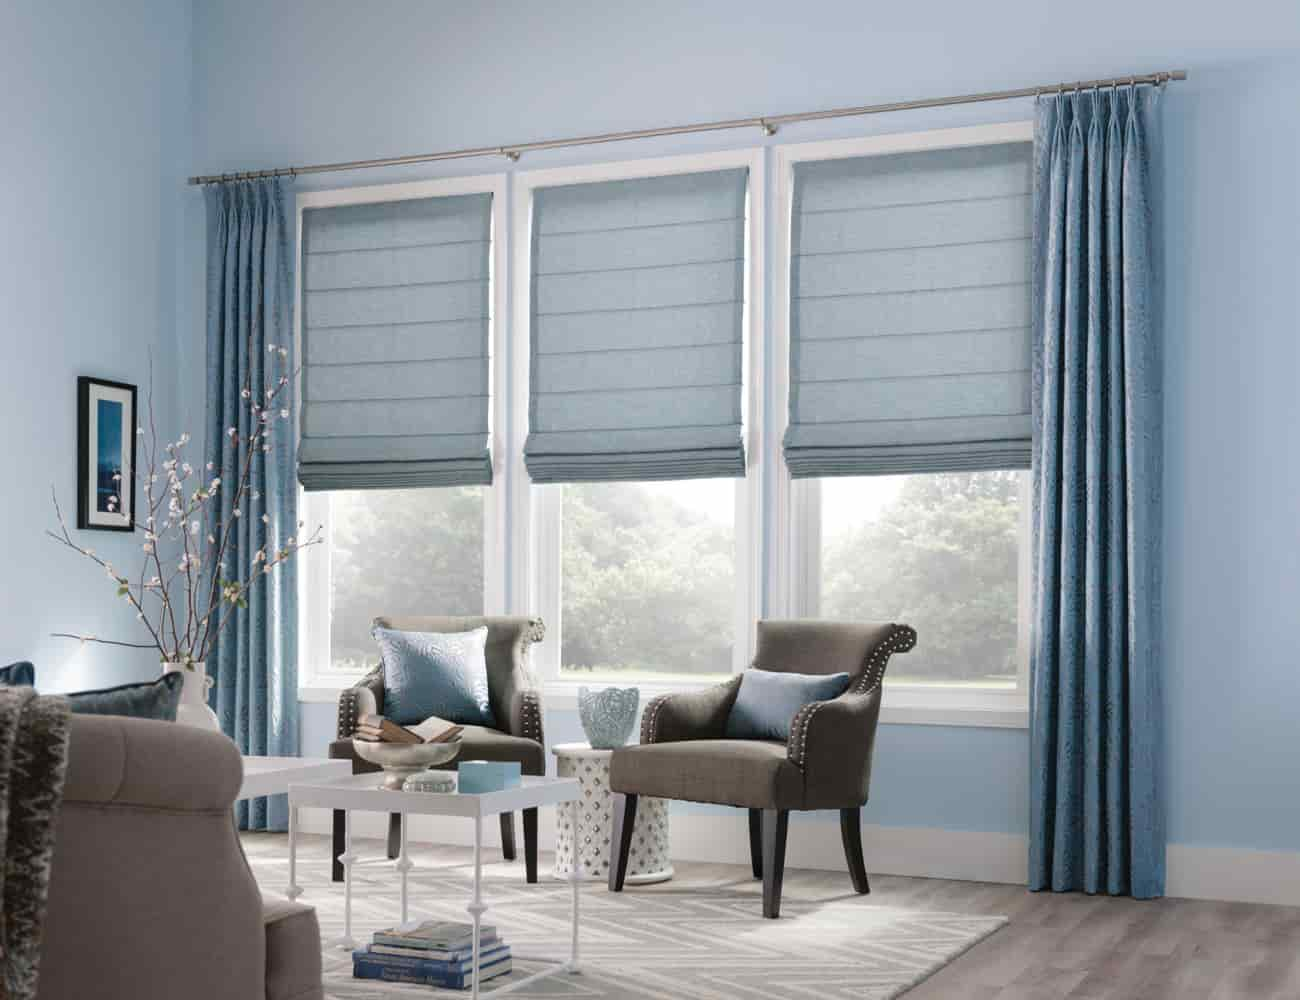 Benefits of Making Curtains and Blinds for the springtime